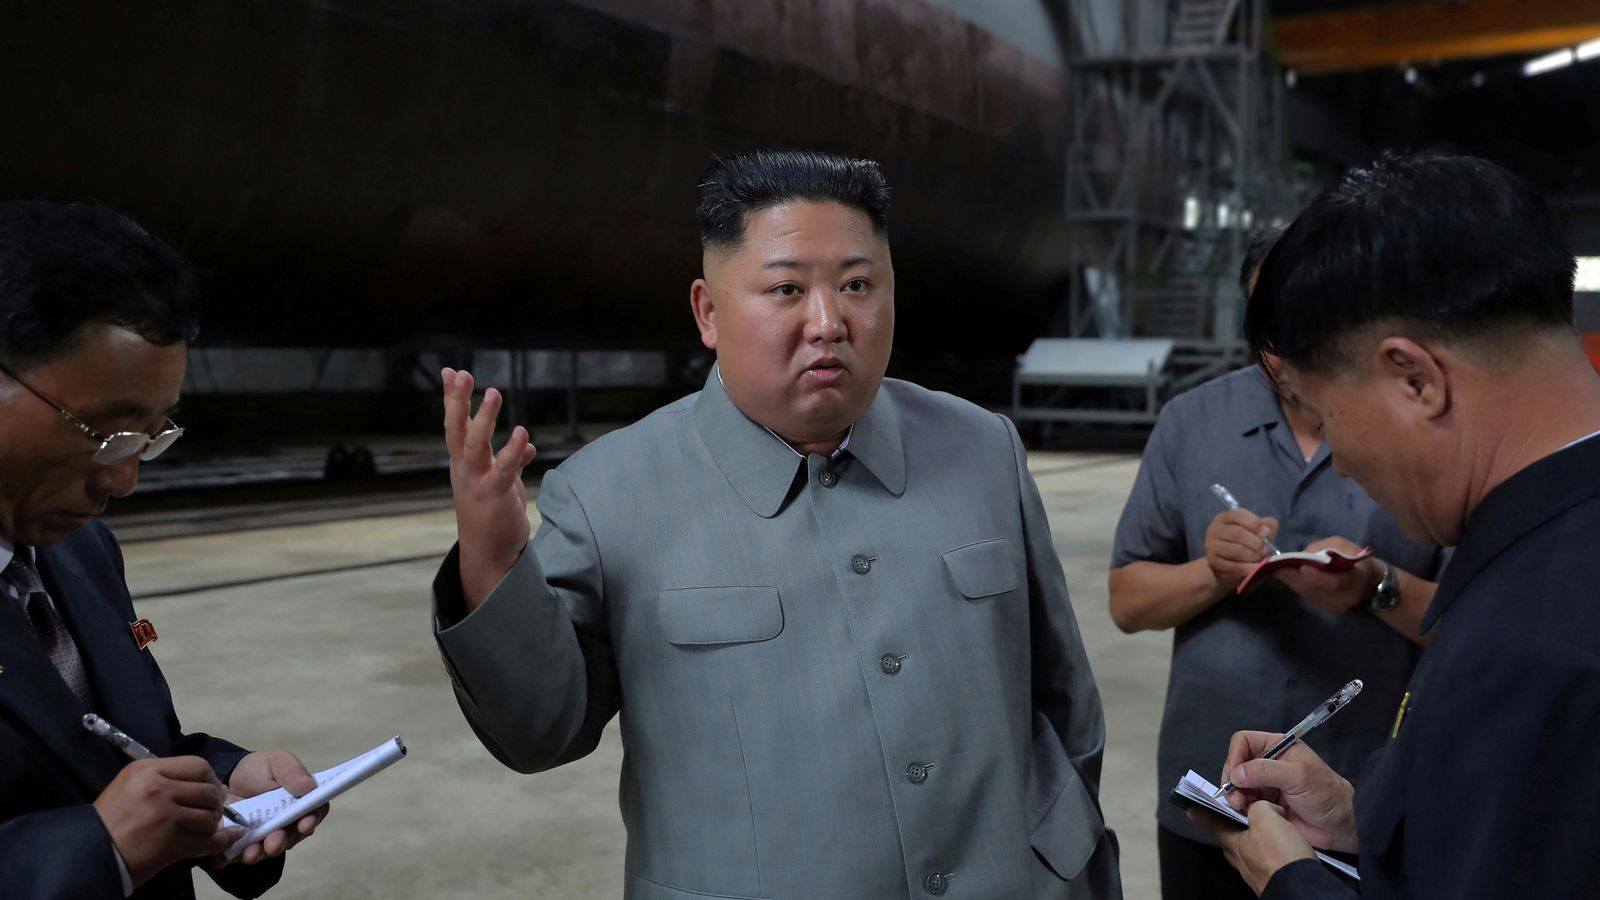 Ballistic missile fears as Kim Jong Un inspects newly built submarine